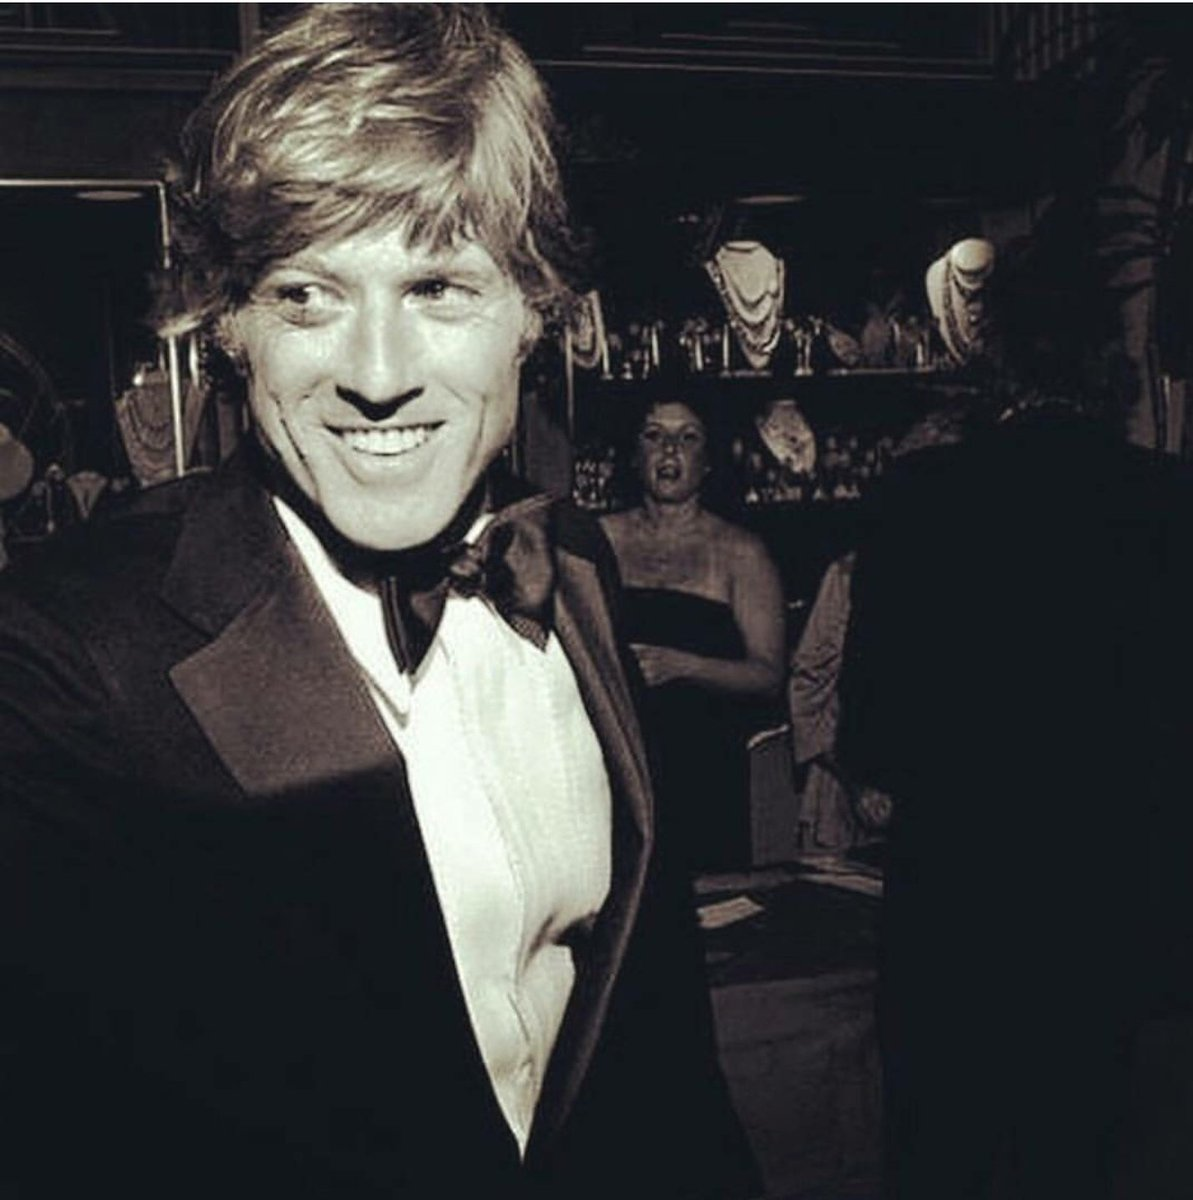 &quot;When I saw the awards trail beginning, I caved in. I was very proud of the film but did not desire accolades.&quot;~RR #OrdinaryPeople #Oscars <br>http://pic.twitter.com/oXsj1oOXe8